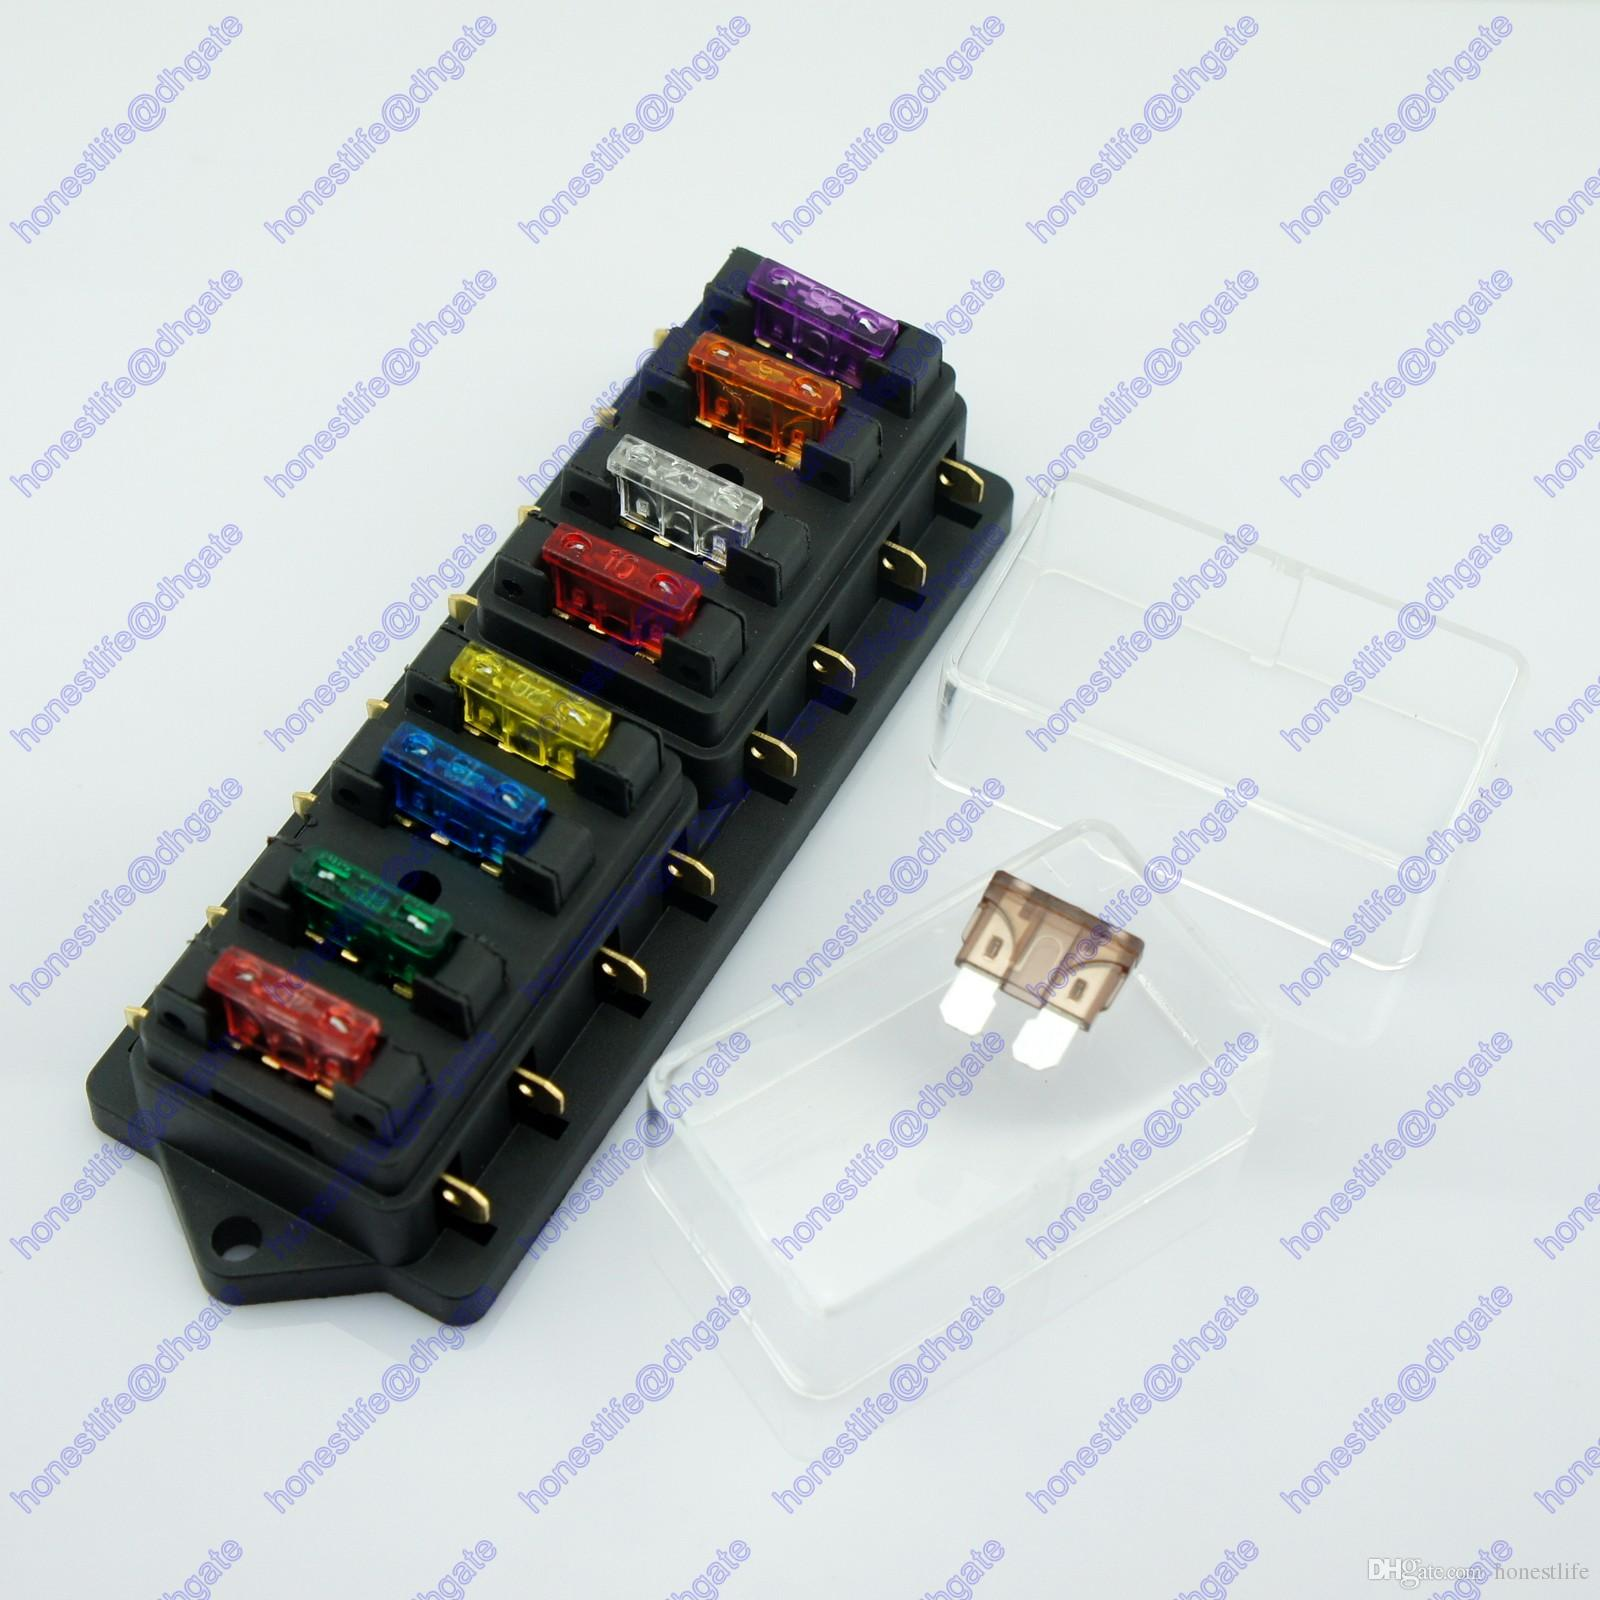 8 way atu standard blade fuse box holder 2017 8 way atu standard blade fuse box holder 12v 24v car truck rv fuse box holder at reclaimingppi.co